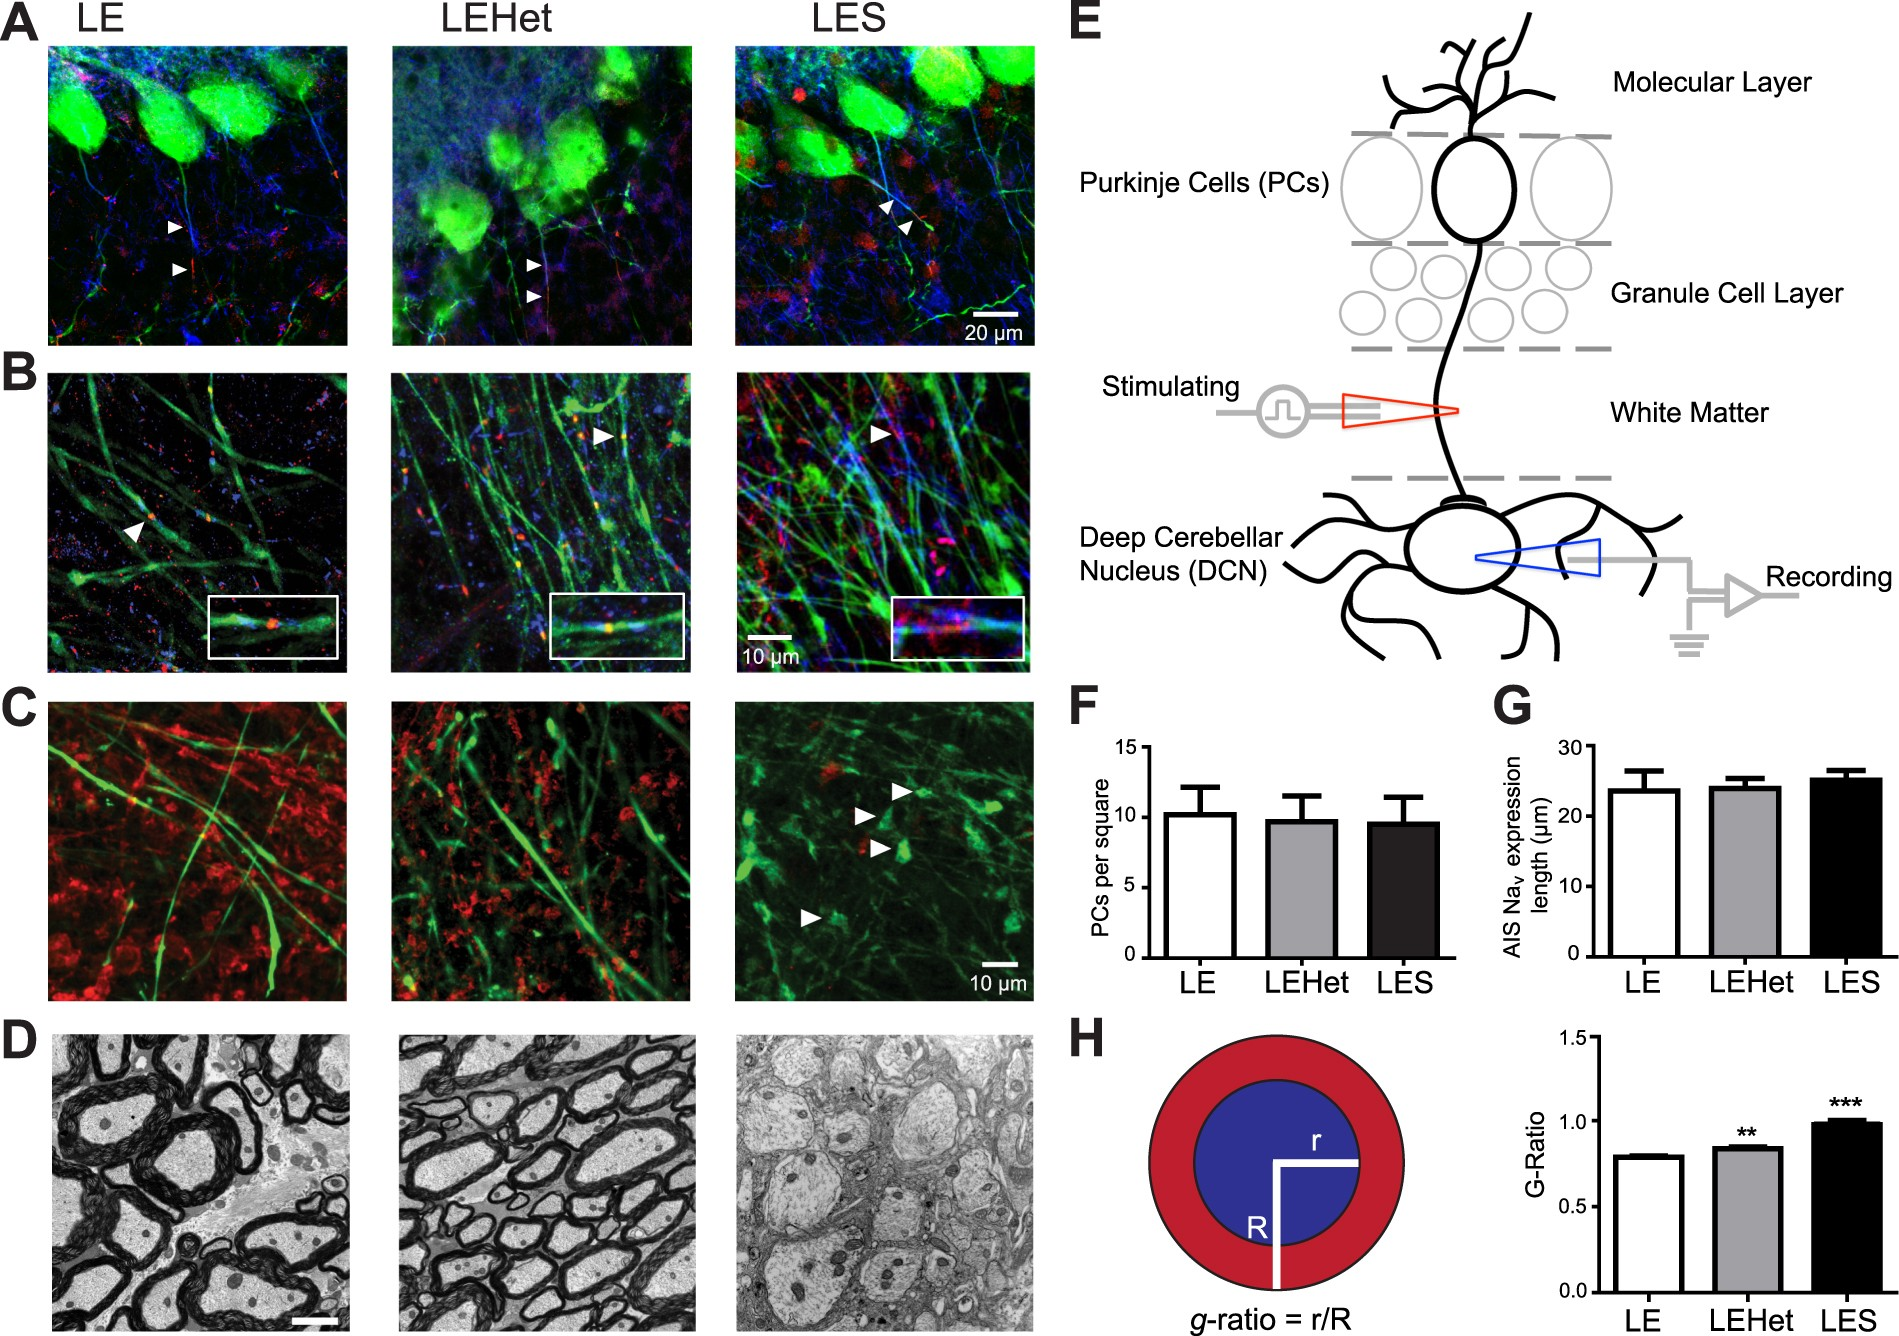 Myelination Of Purkinje Axons Is Critical For Resilient Synaptic Drz 400 2005 Wiring Diagram Transmission In The Deep Cerebellar Nucleus Scientific Reports